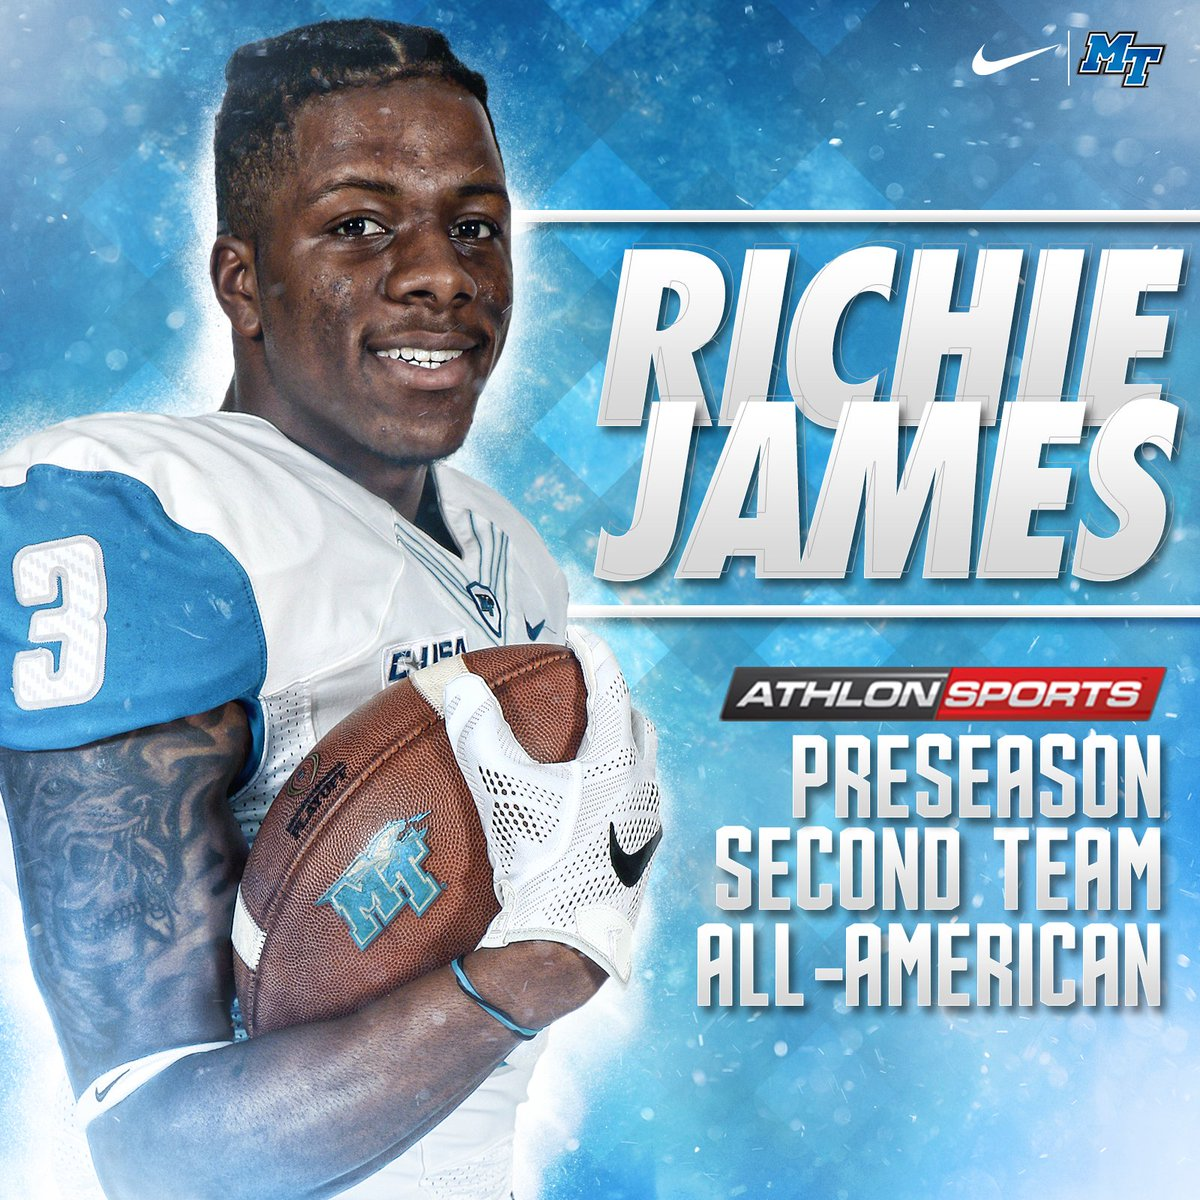 AthlonSports tabs @MT_FB's Richie James as a preseason second team All- American! Story: http://bit.ly/2rRnOIv #BlueRaiders #TrueBluepic.twitter.com/ ...